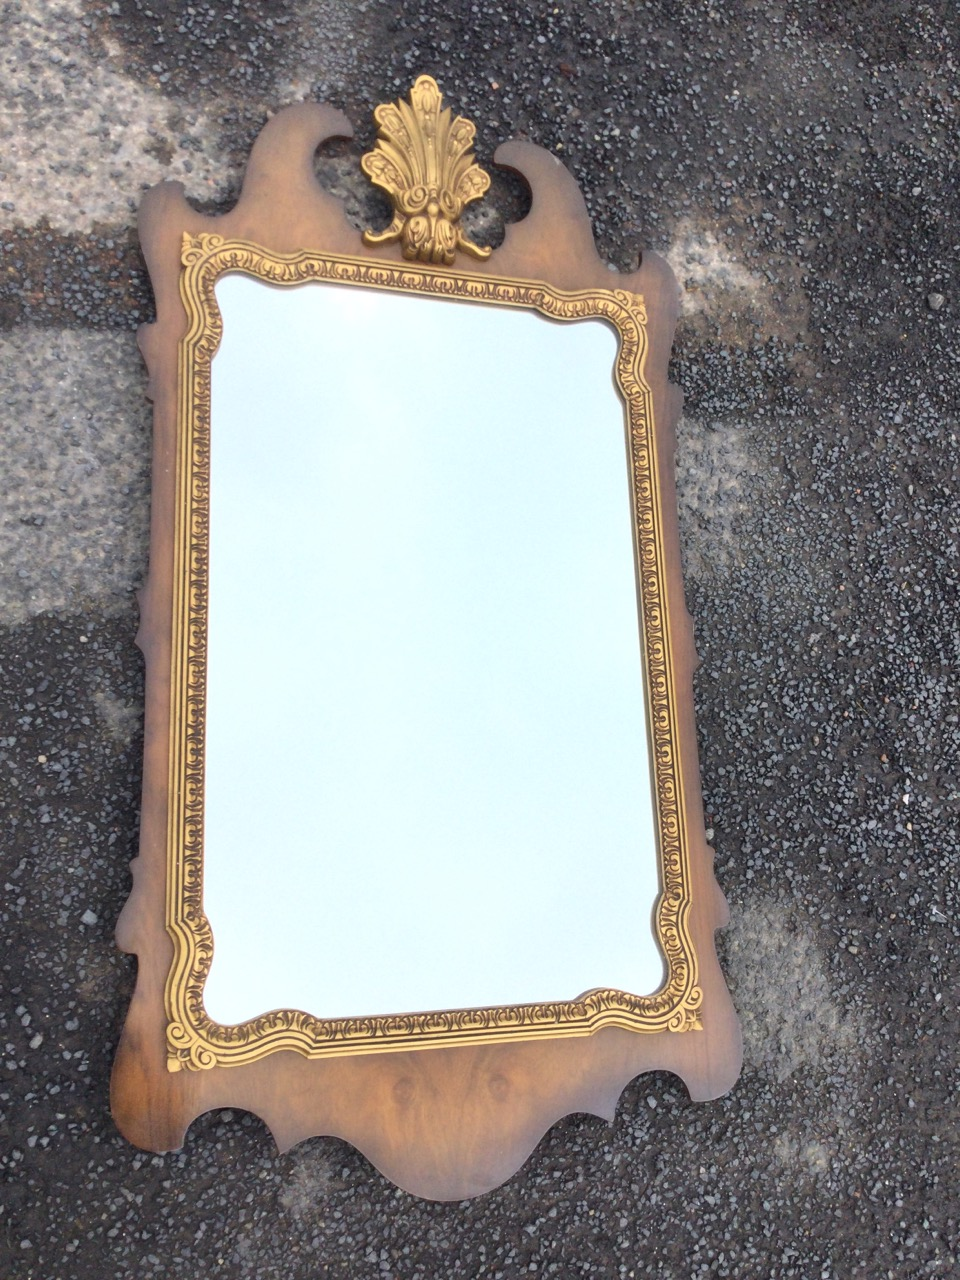 A George II style walnut framed mirror, the pediment with scrolled gilt leaf crest above a shaped - Image 3 of 3